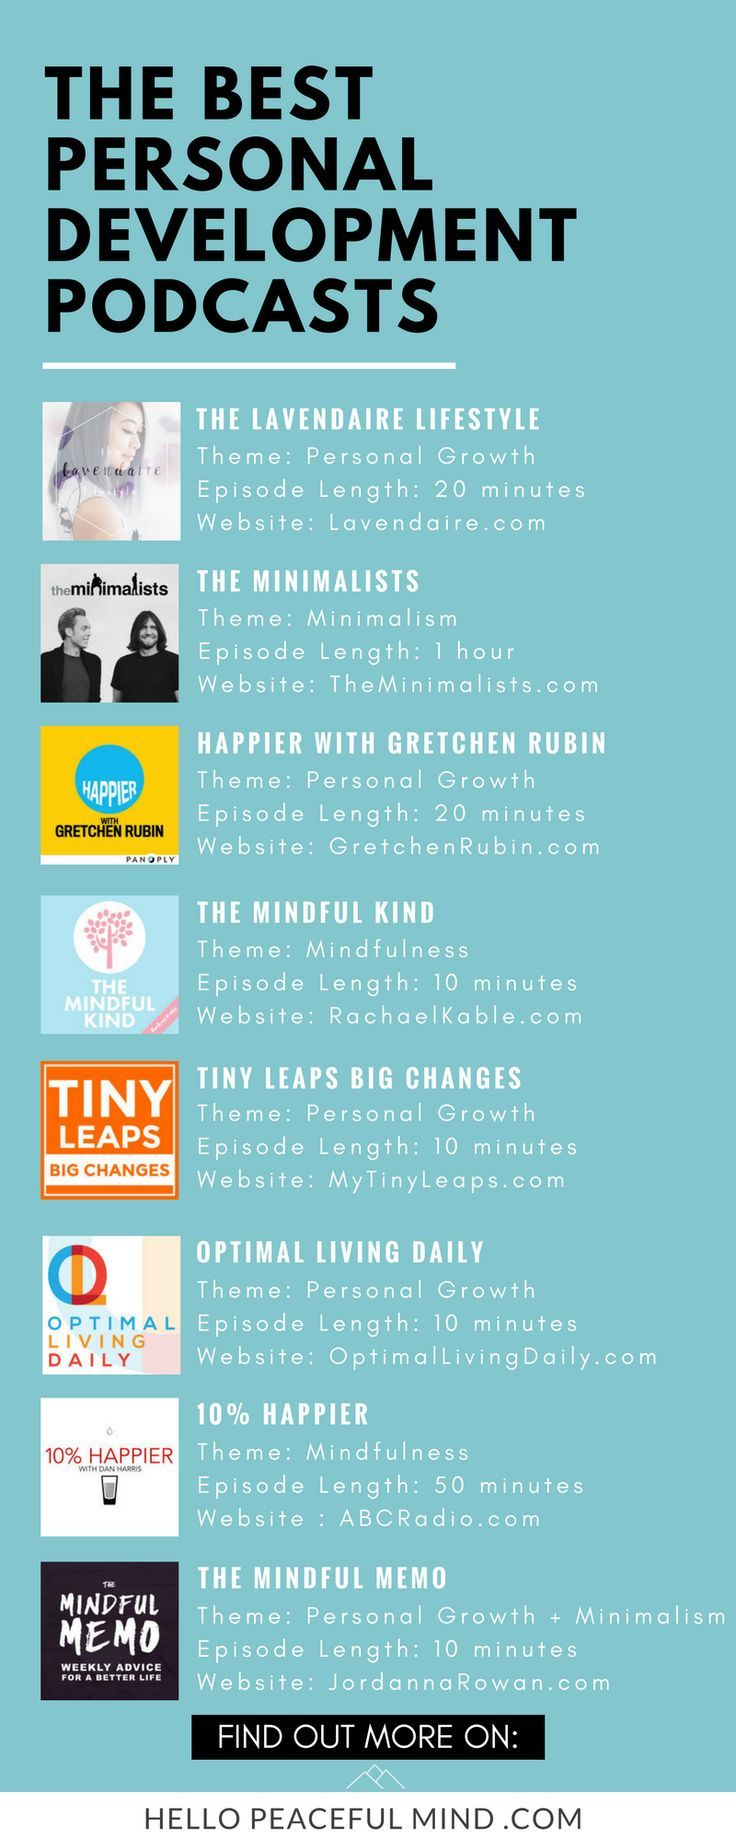 The best podcasts on personal development. Great list!